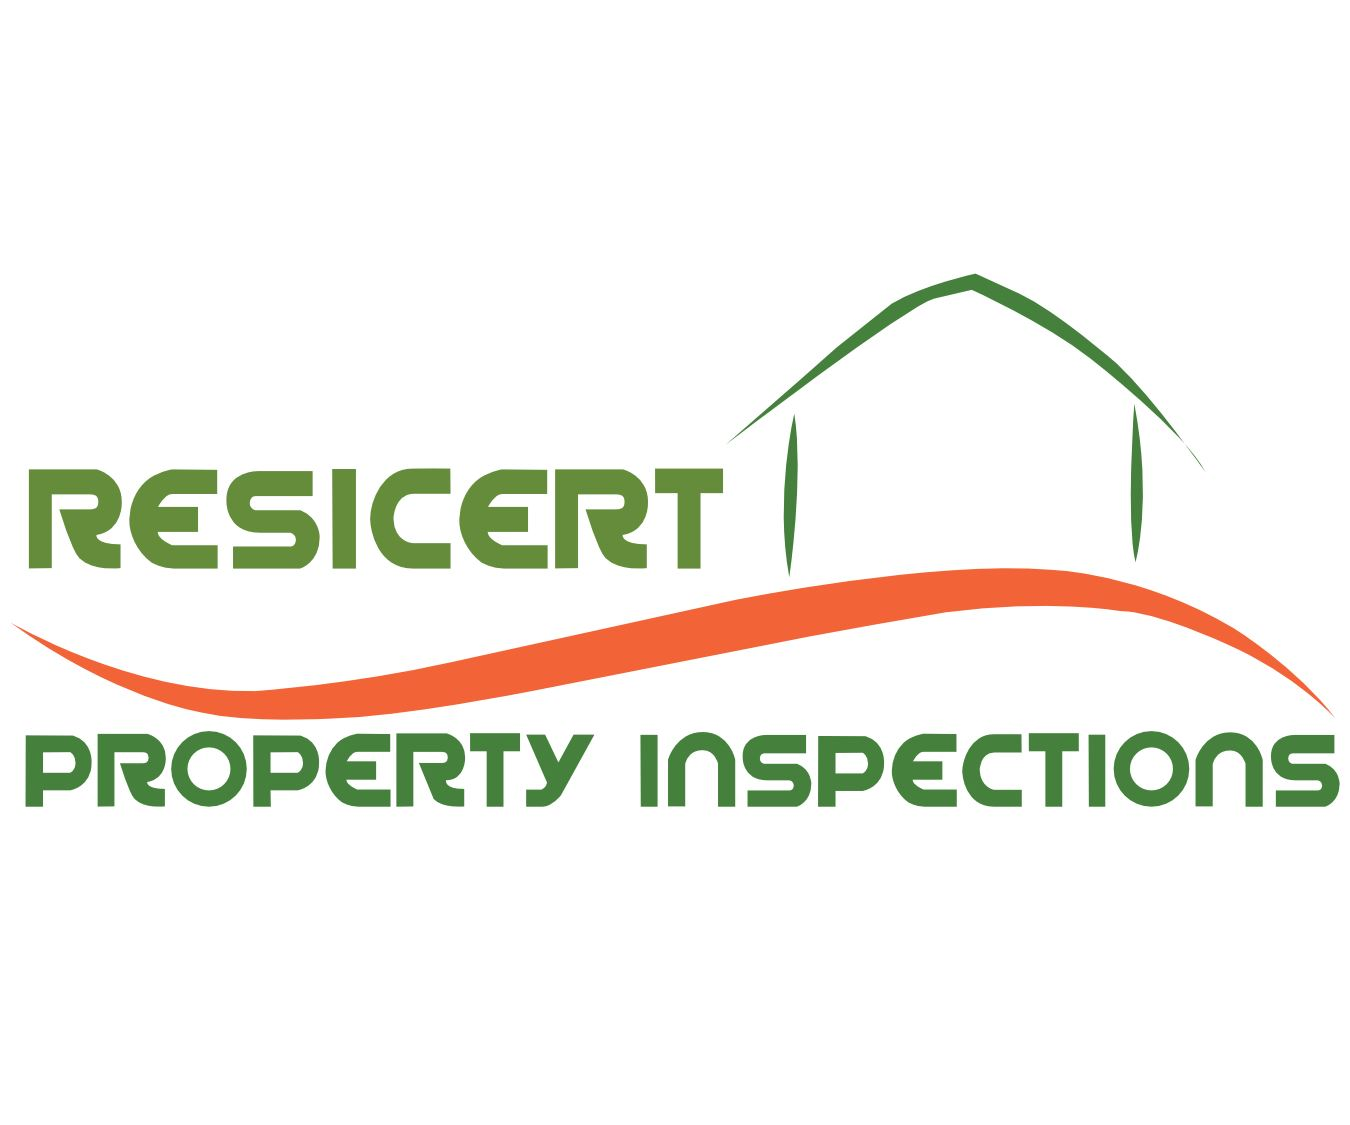 Resicert Property Inspections